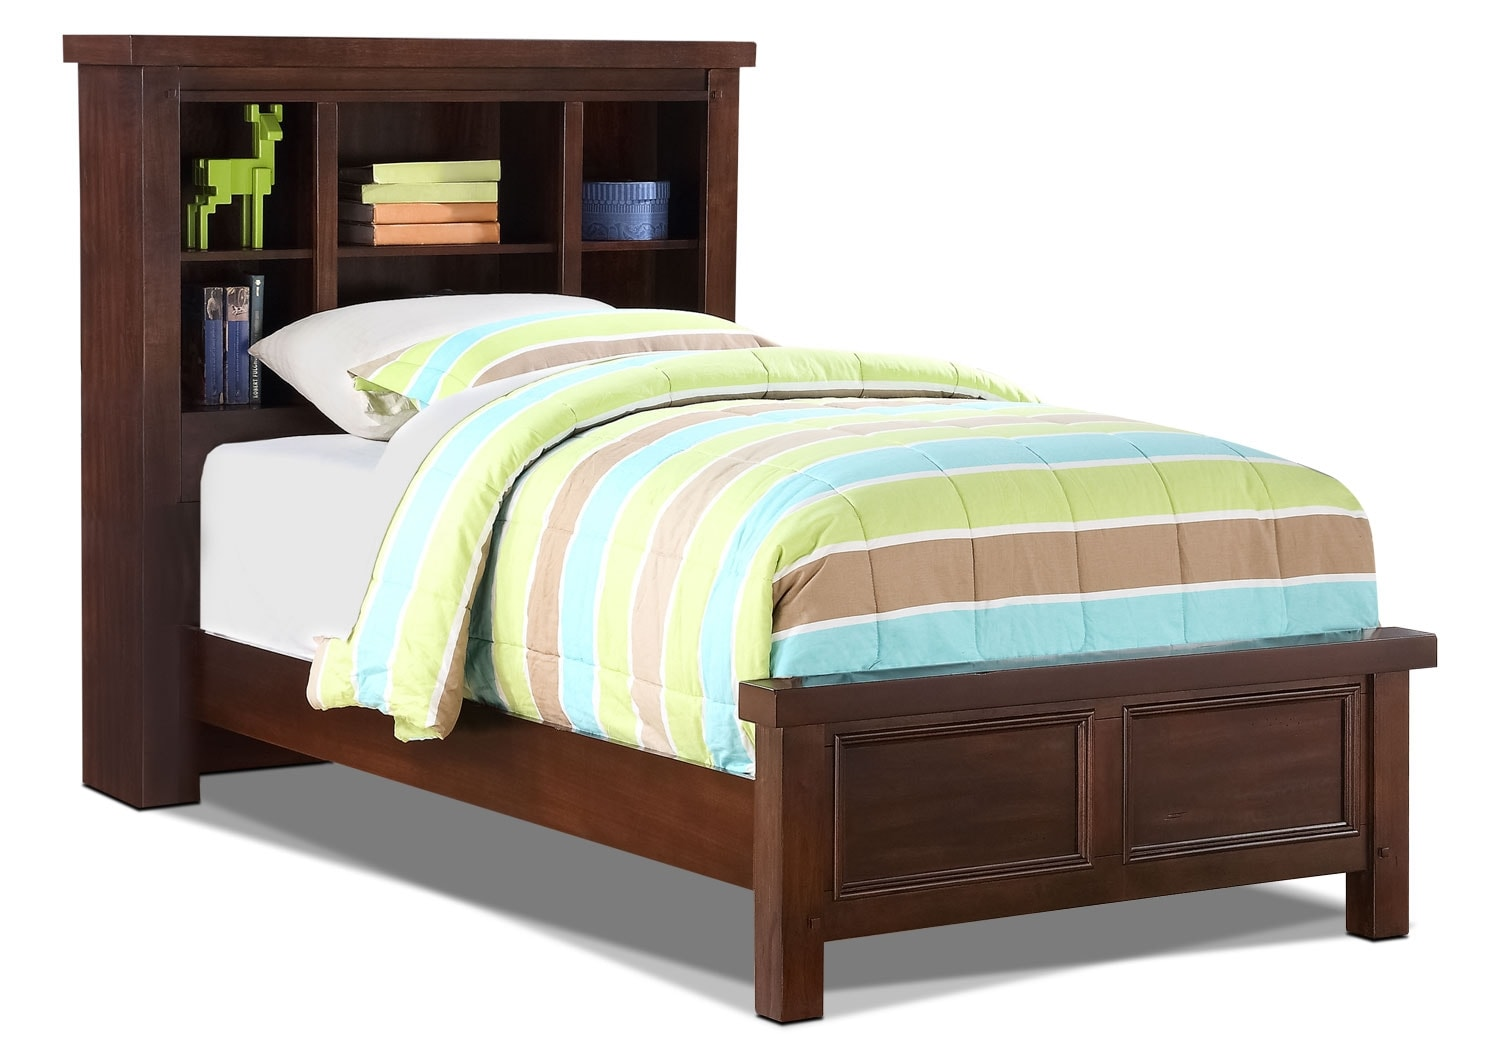 Sonoma Youth Full Bookcase Bed